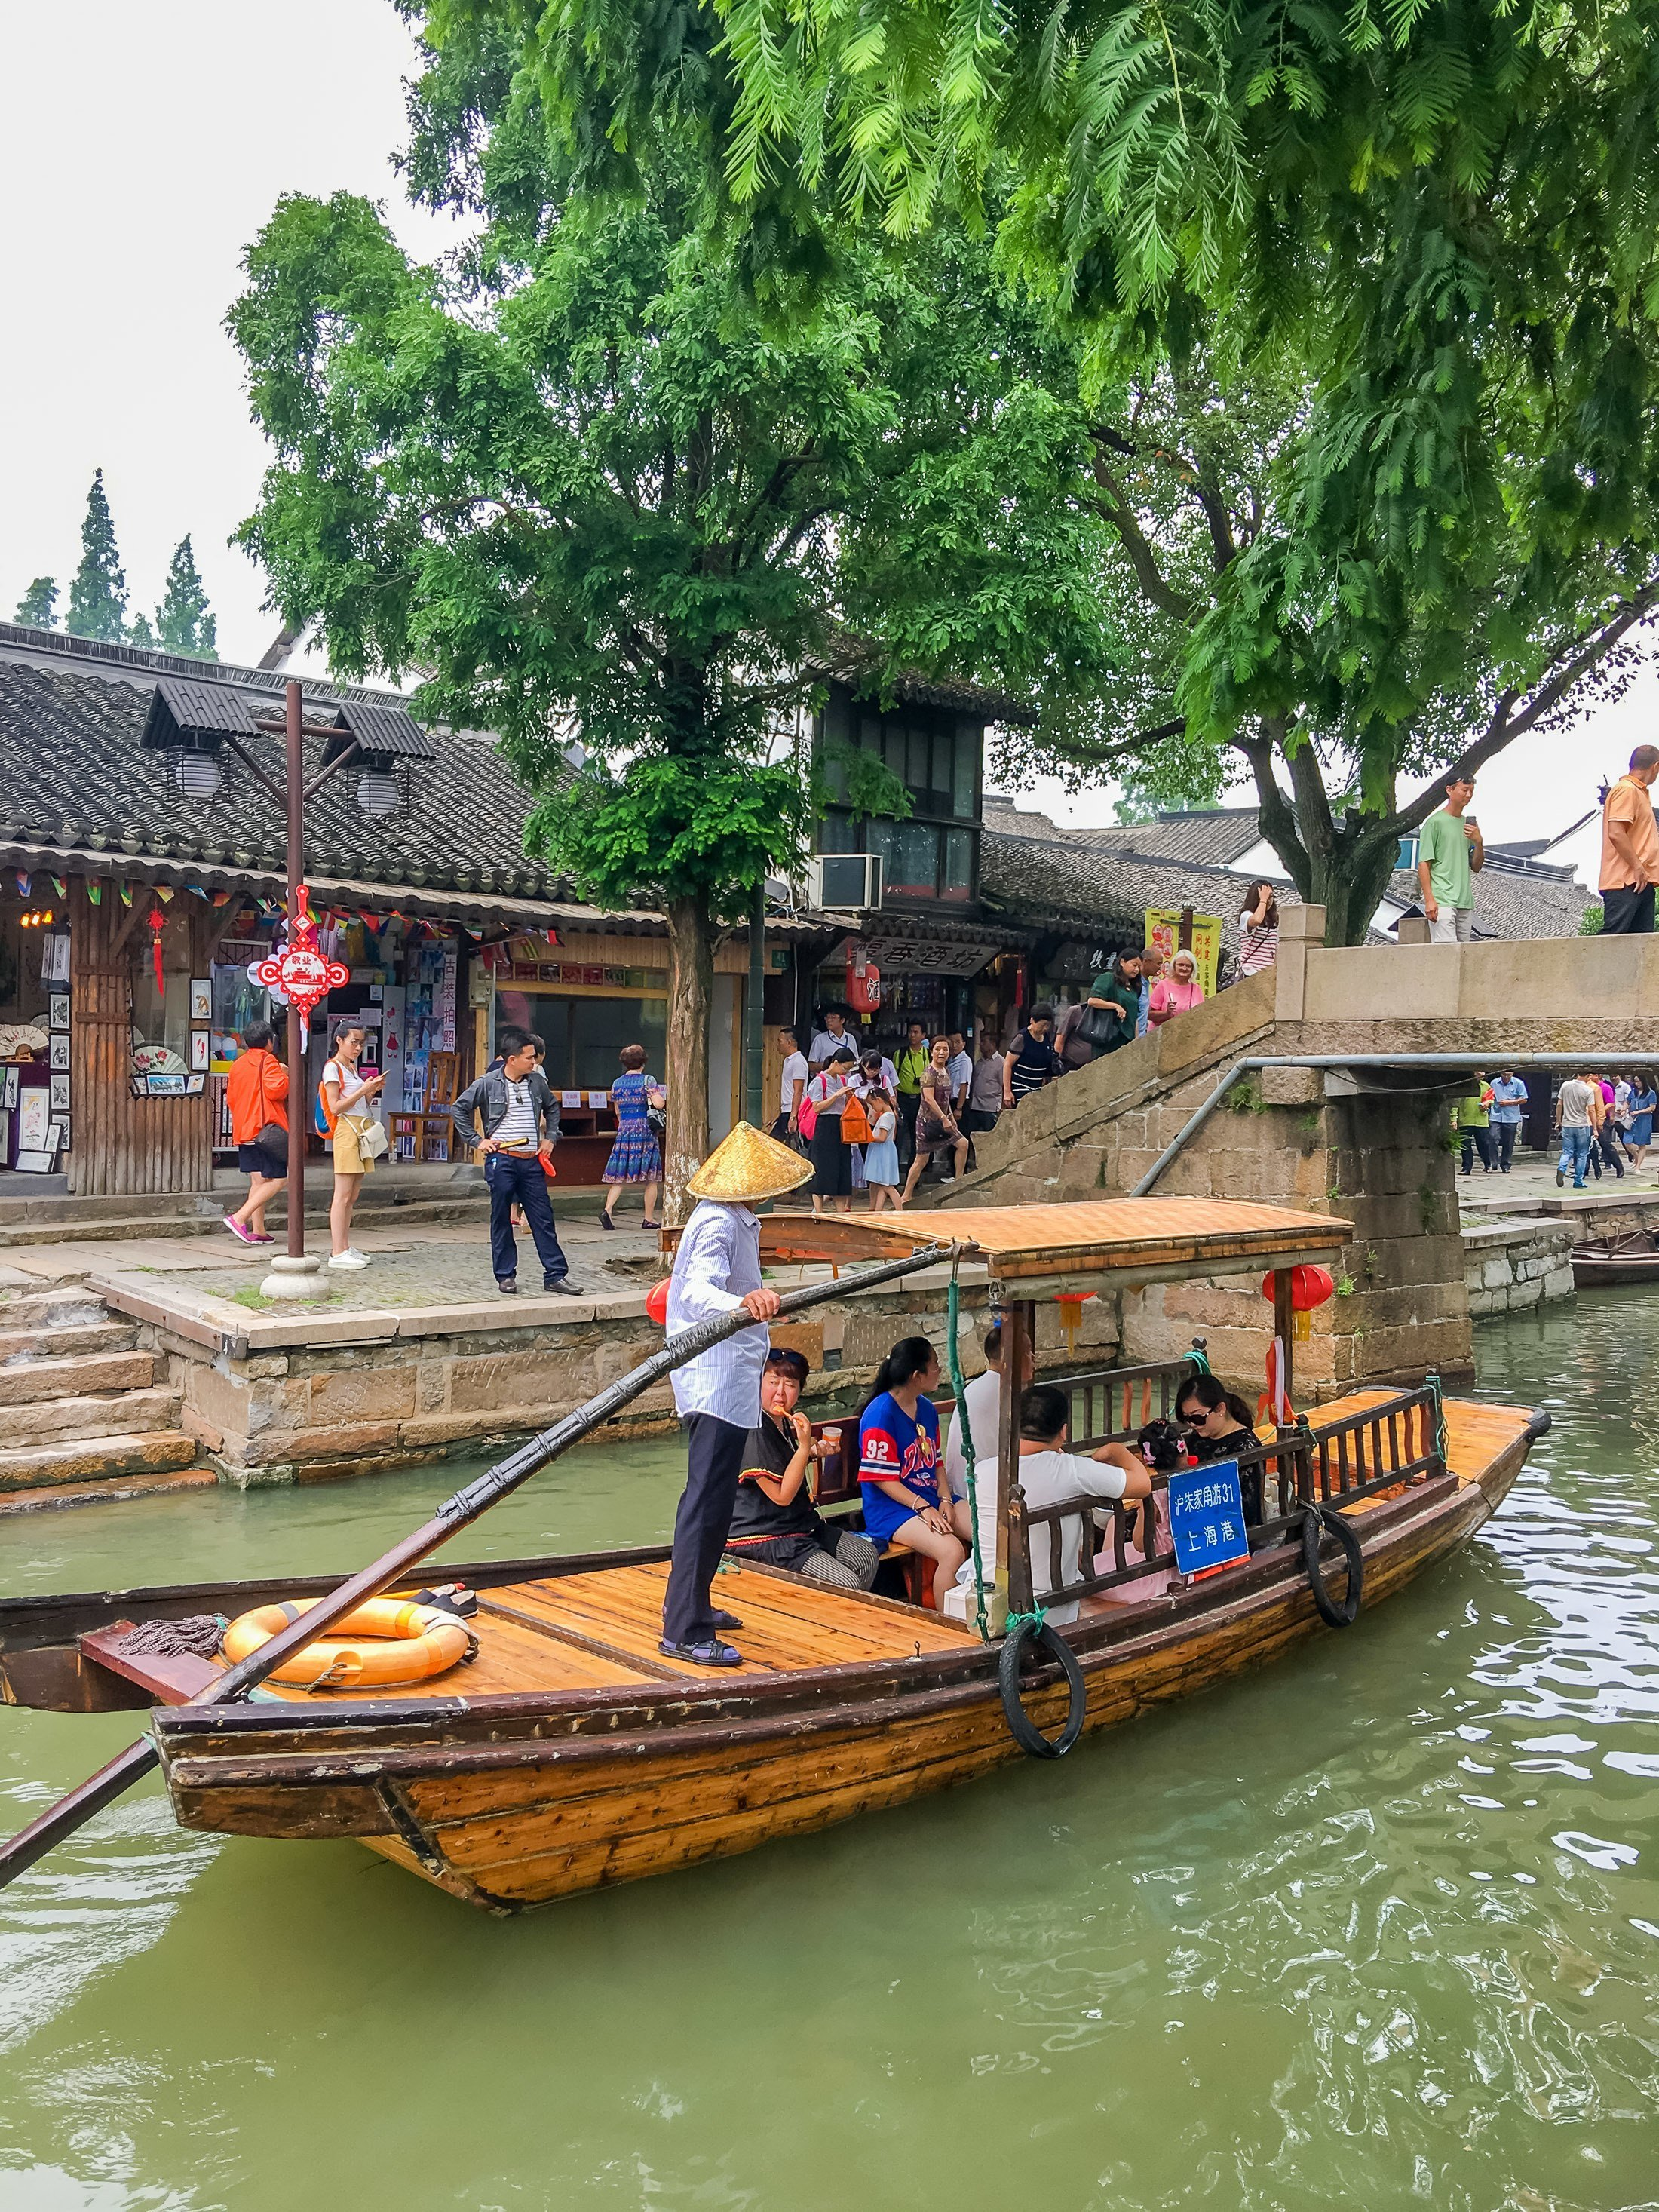 Zhujiajiao ancient water town is a good day trip from Shanghai with kids.